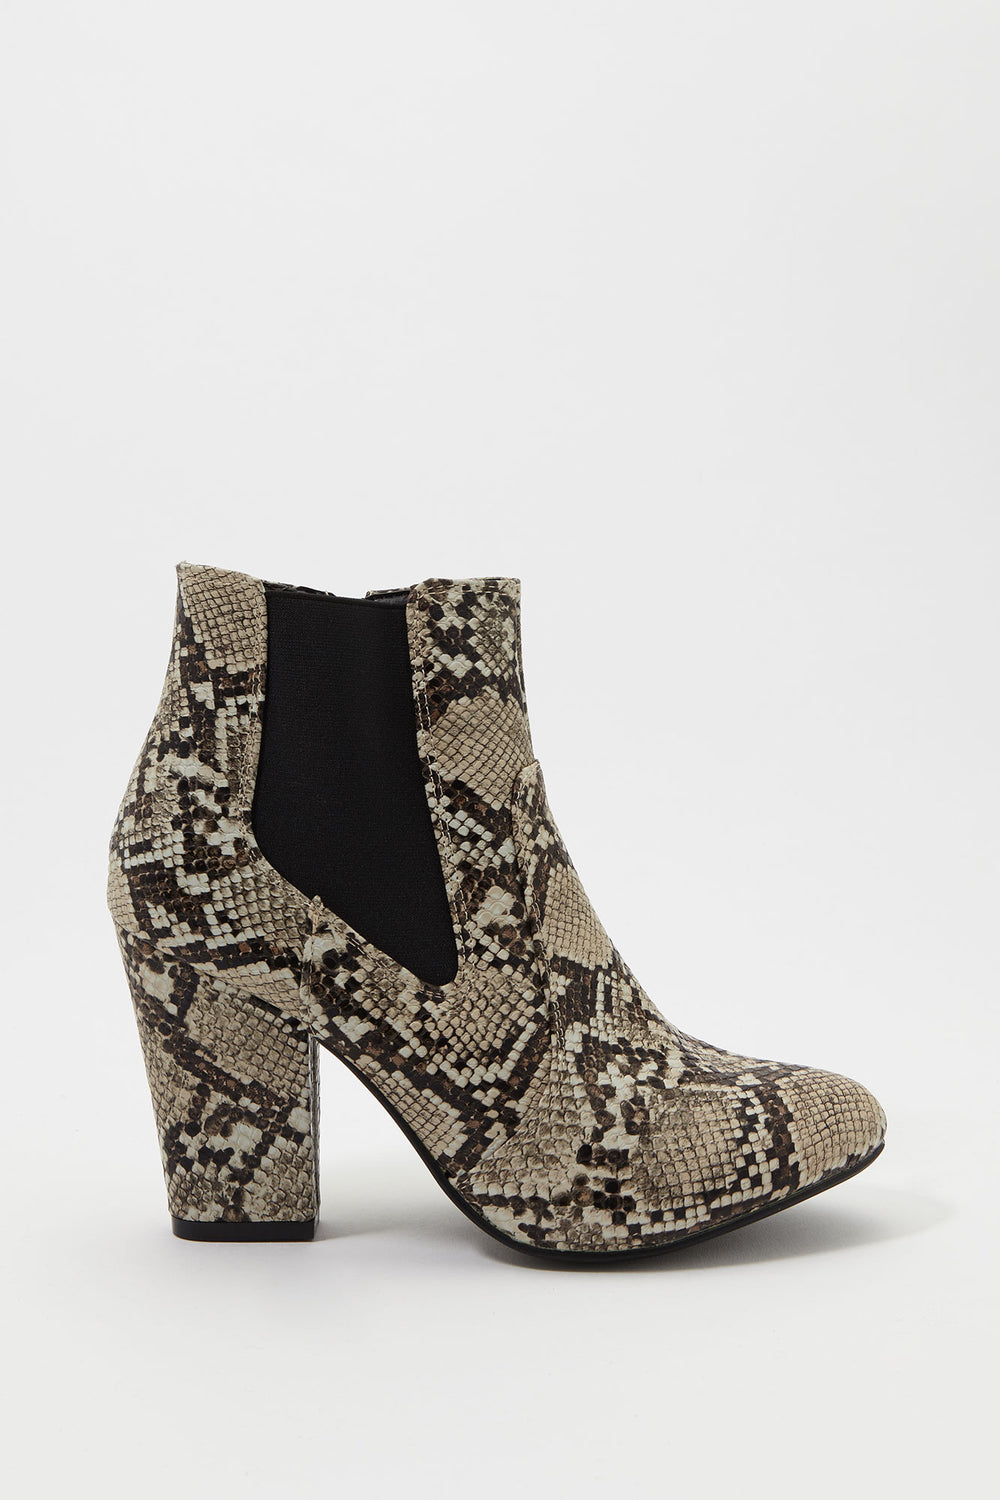 Gore Block Heel Bootie Black with White